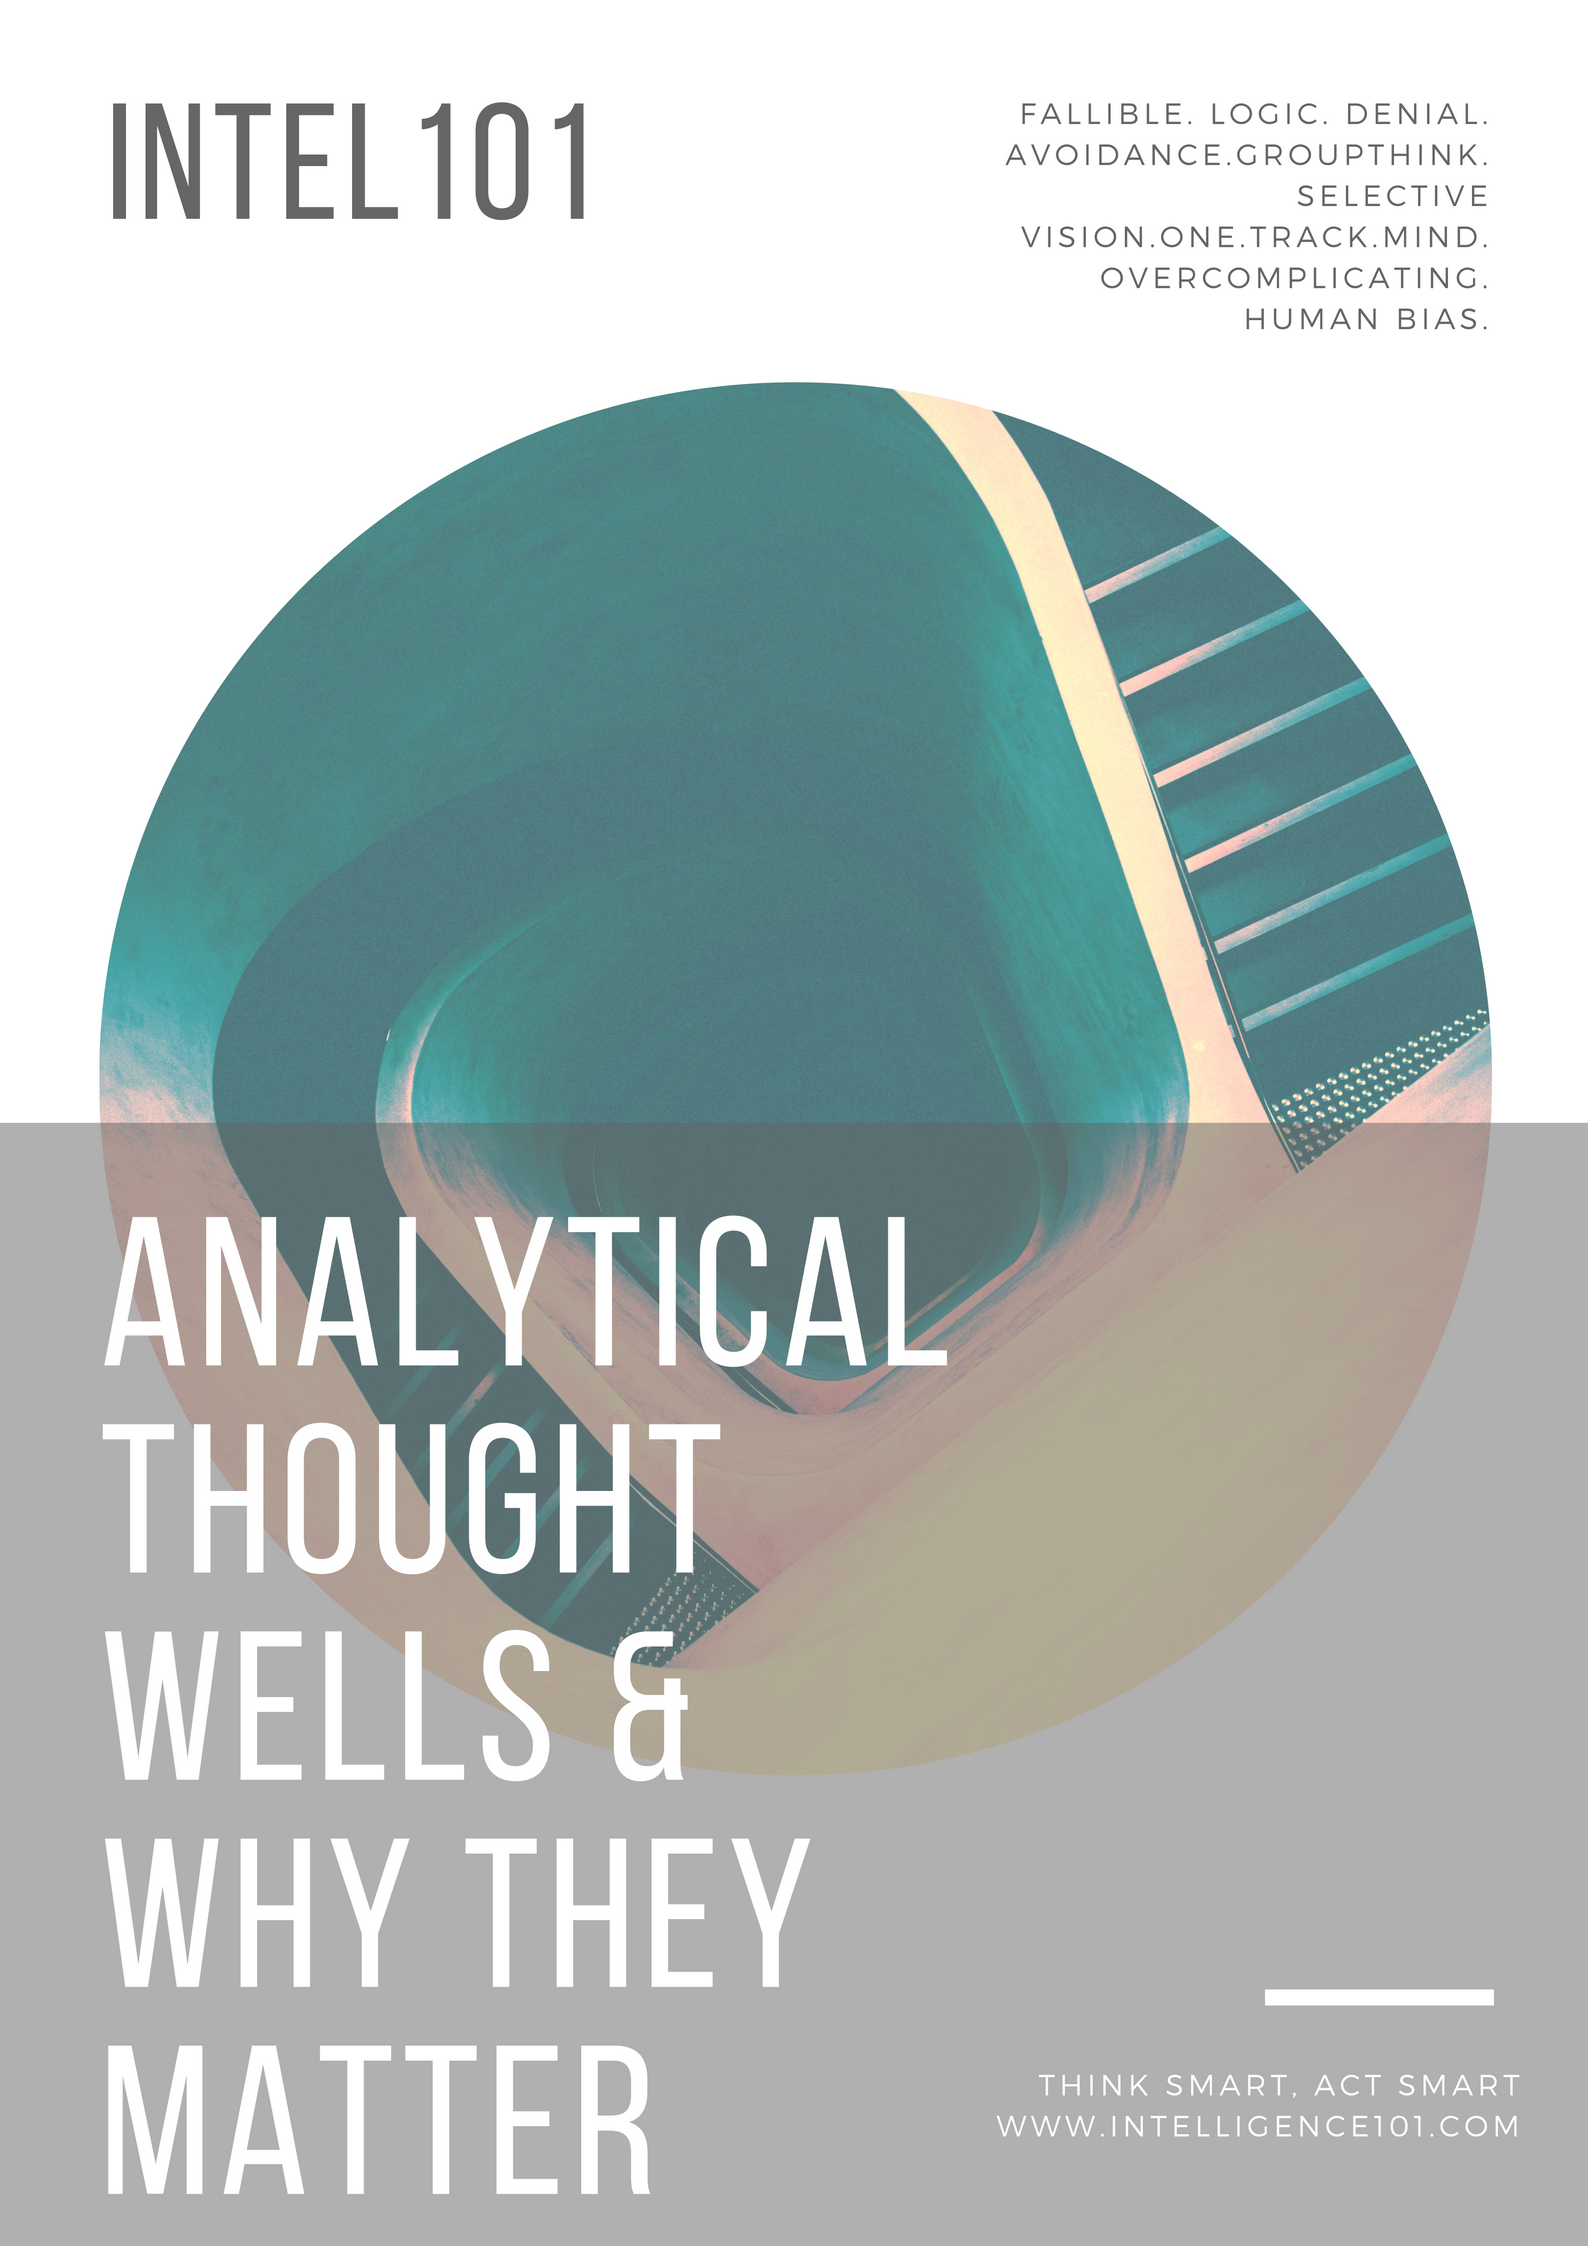 How To Identify Analytical Thought Wells